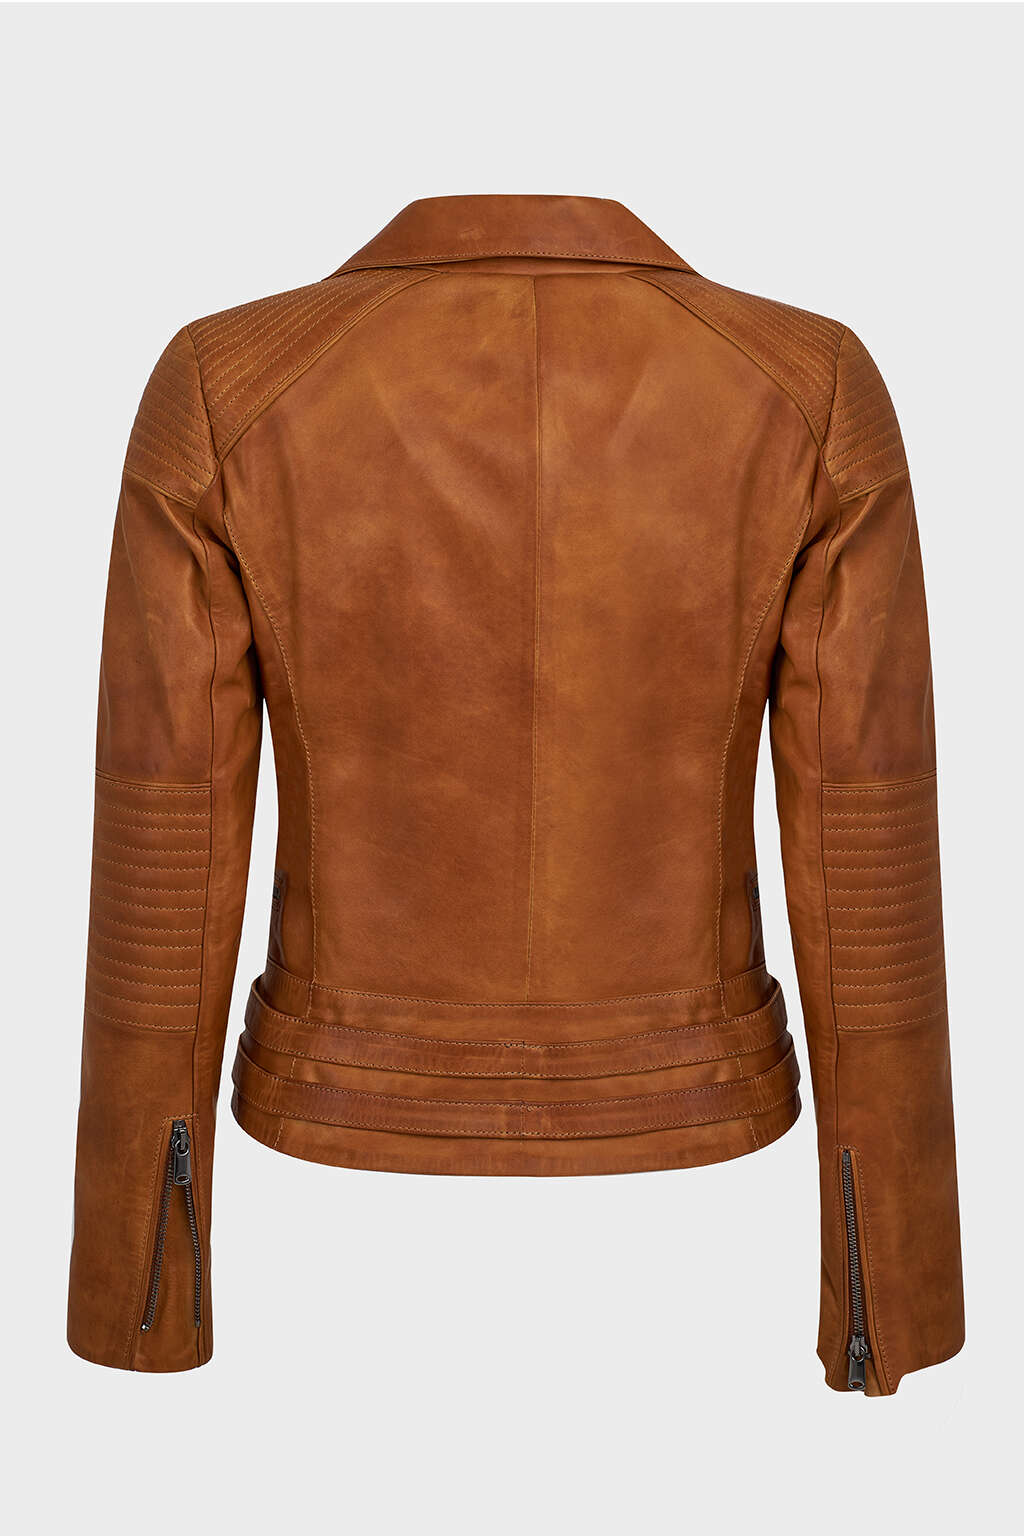 Back of Tawny Brown Classic Biker Leather Jacket